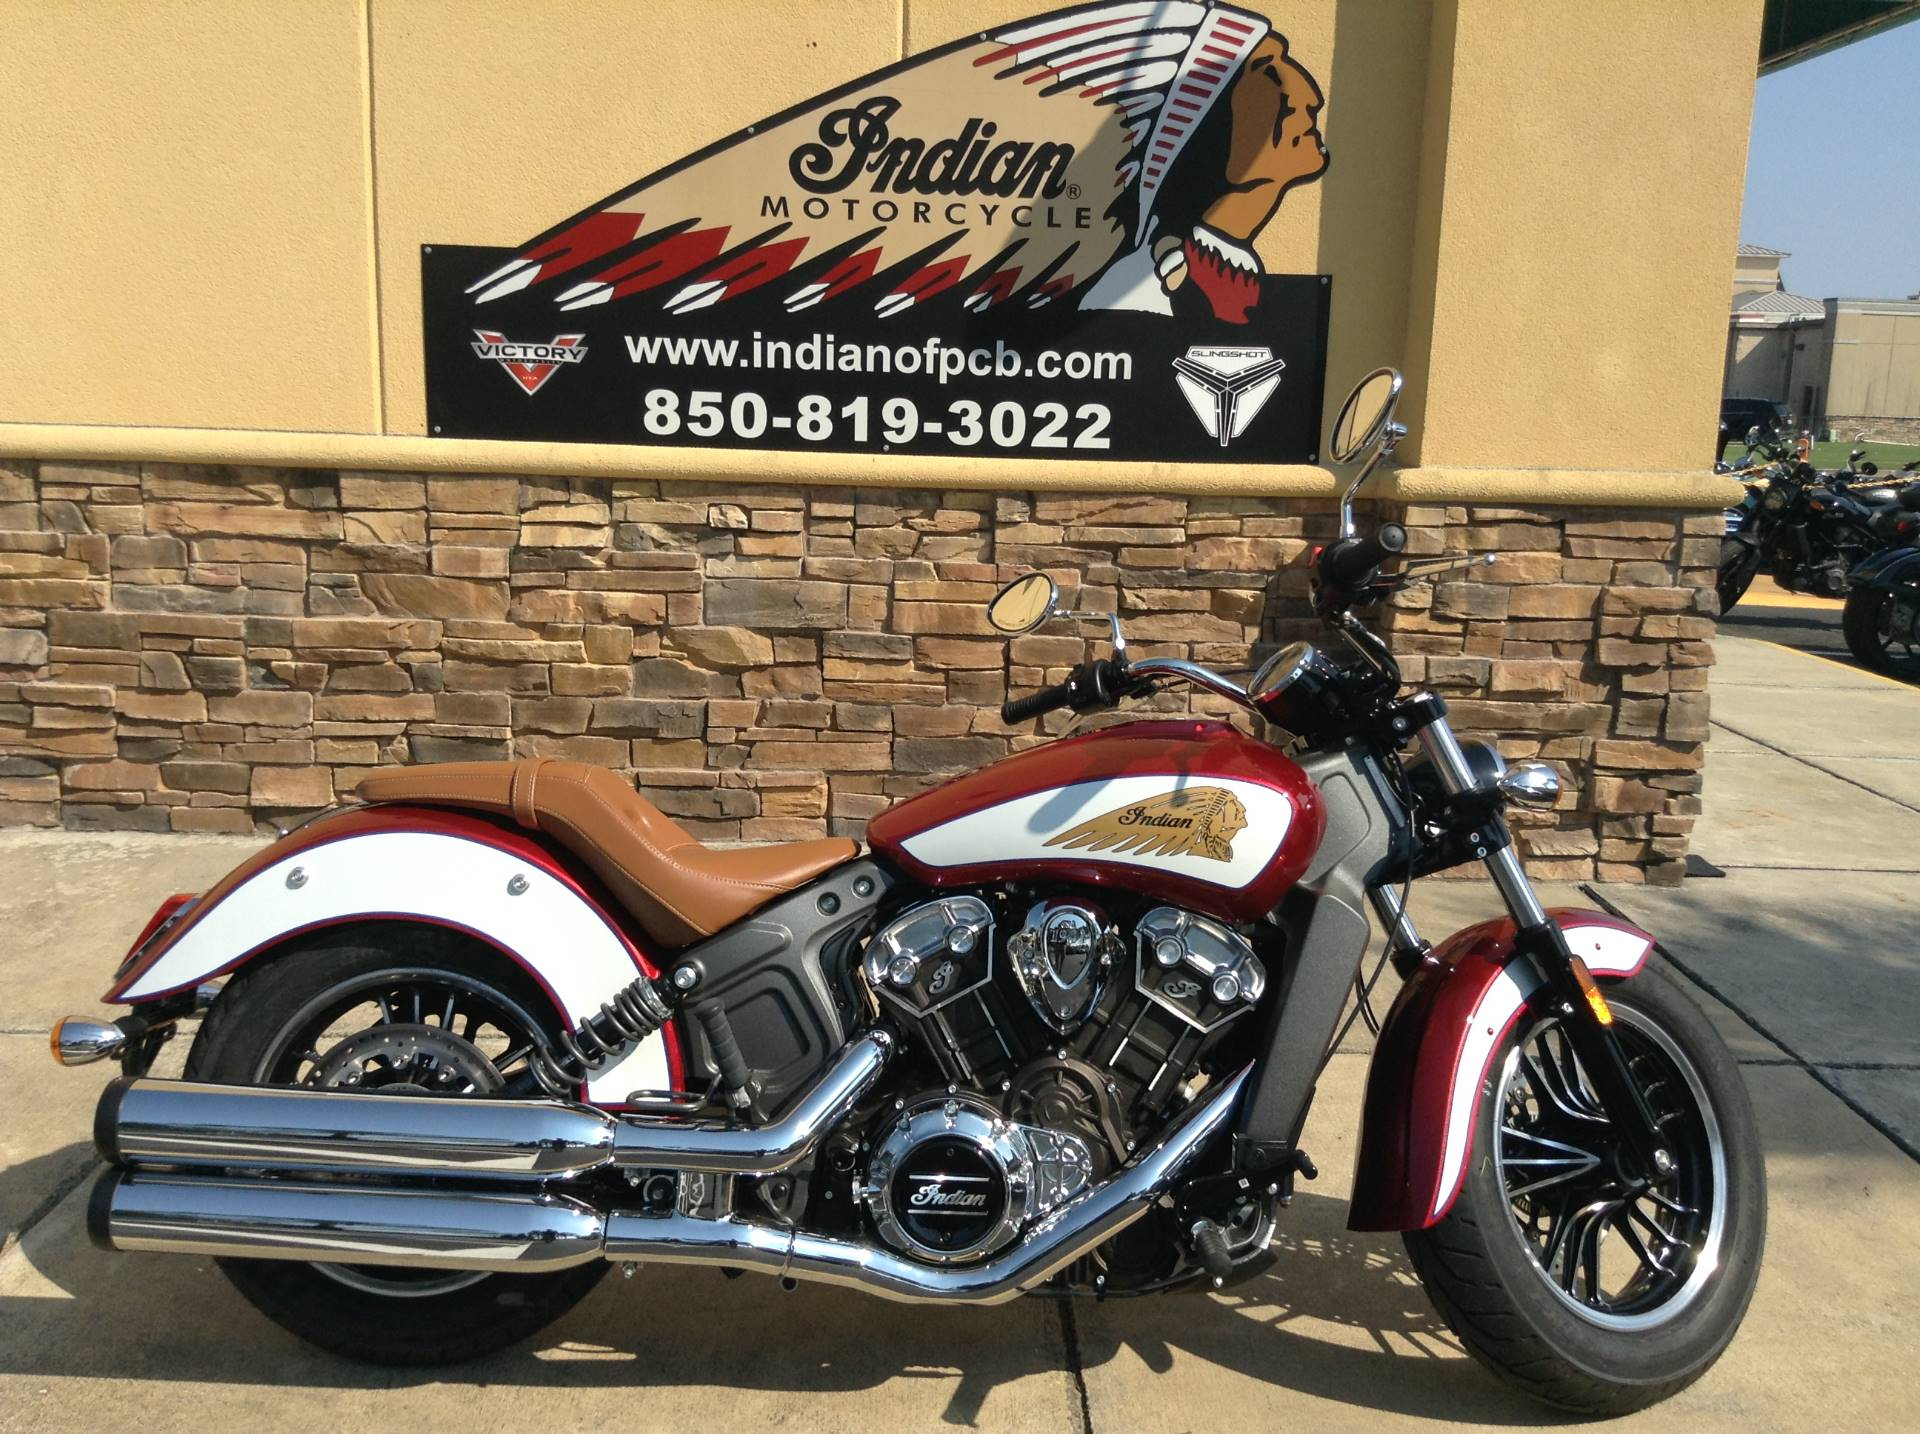 2020 Indian SCOUT ABS ICON SERIES in Panama City Beach, Florida - Photo 1